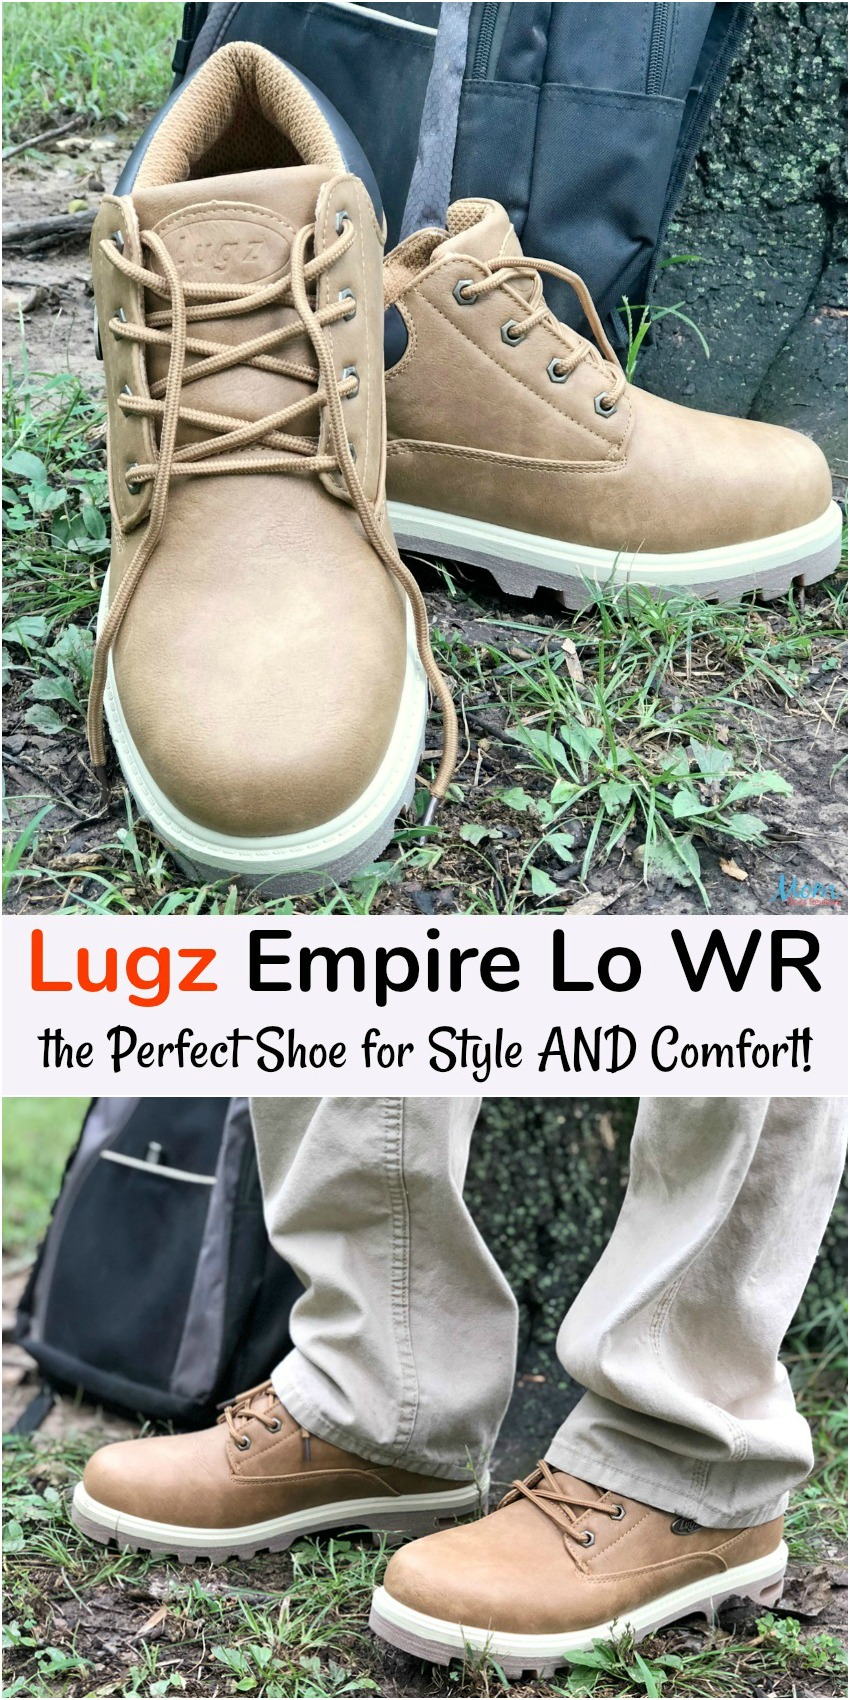 Lugz Empire Lo WR is the Perfect Shoe for Style AND Comfort